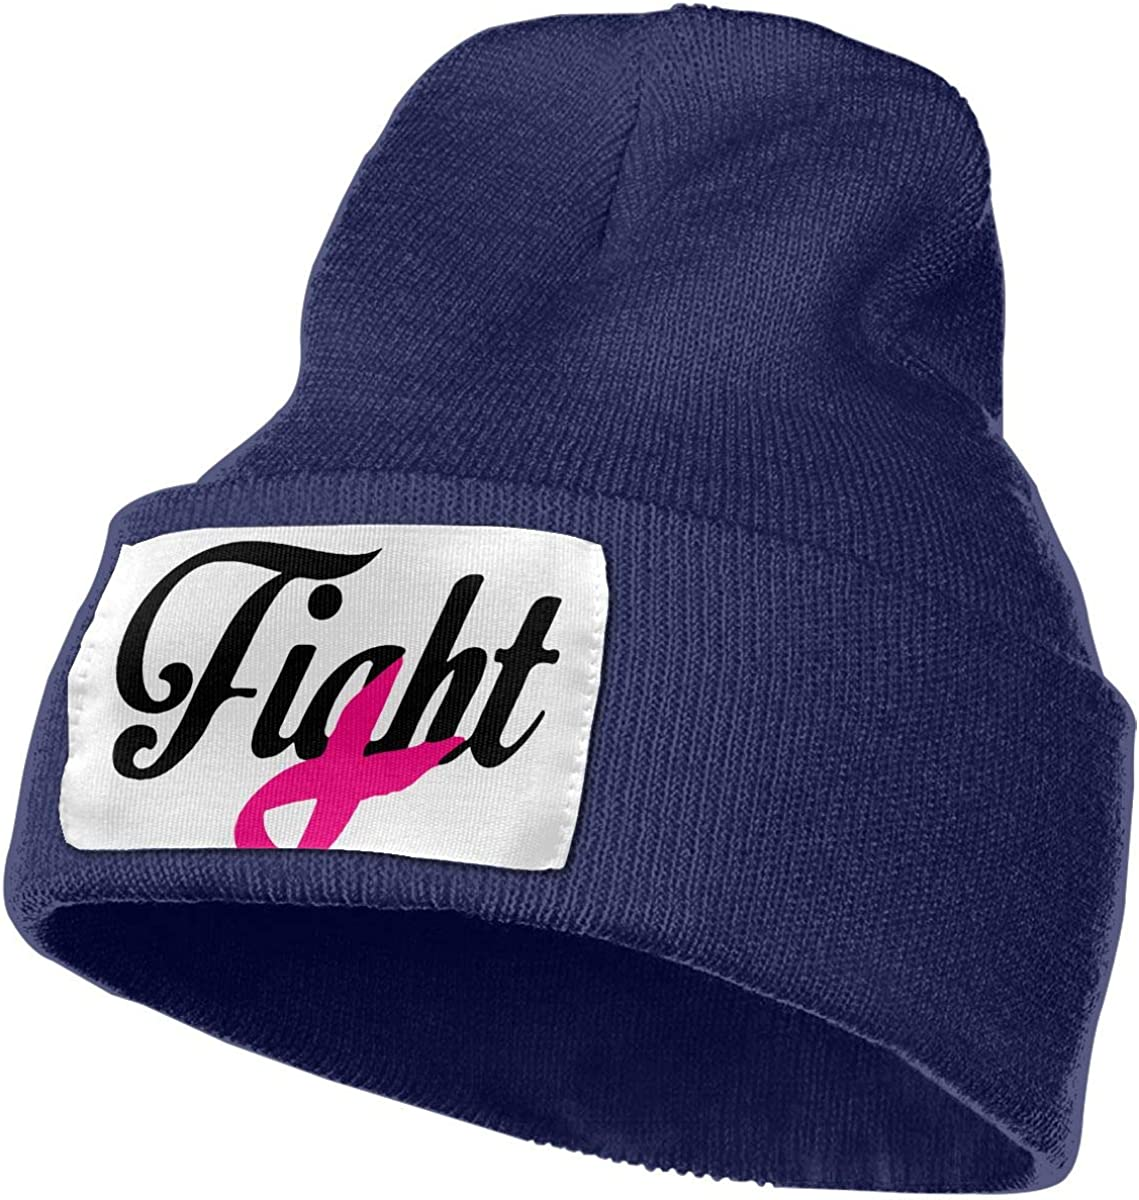 TAOMAP89 Fight Breast Cancer Awareness Women and Men Skull Caps Winter Warm Stretchy Knit Beanie Hats